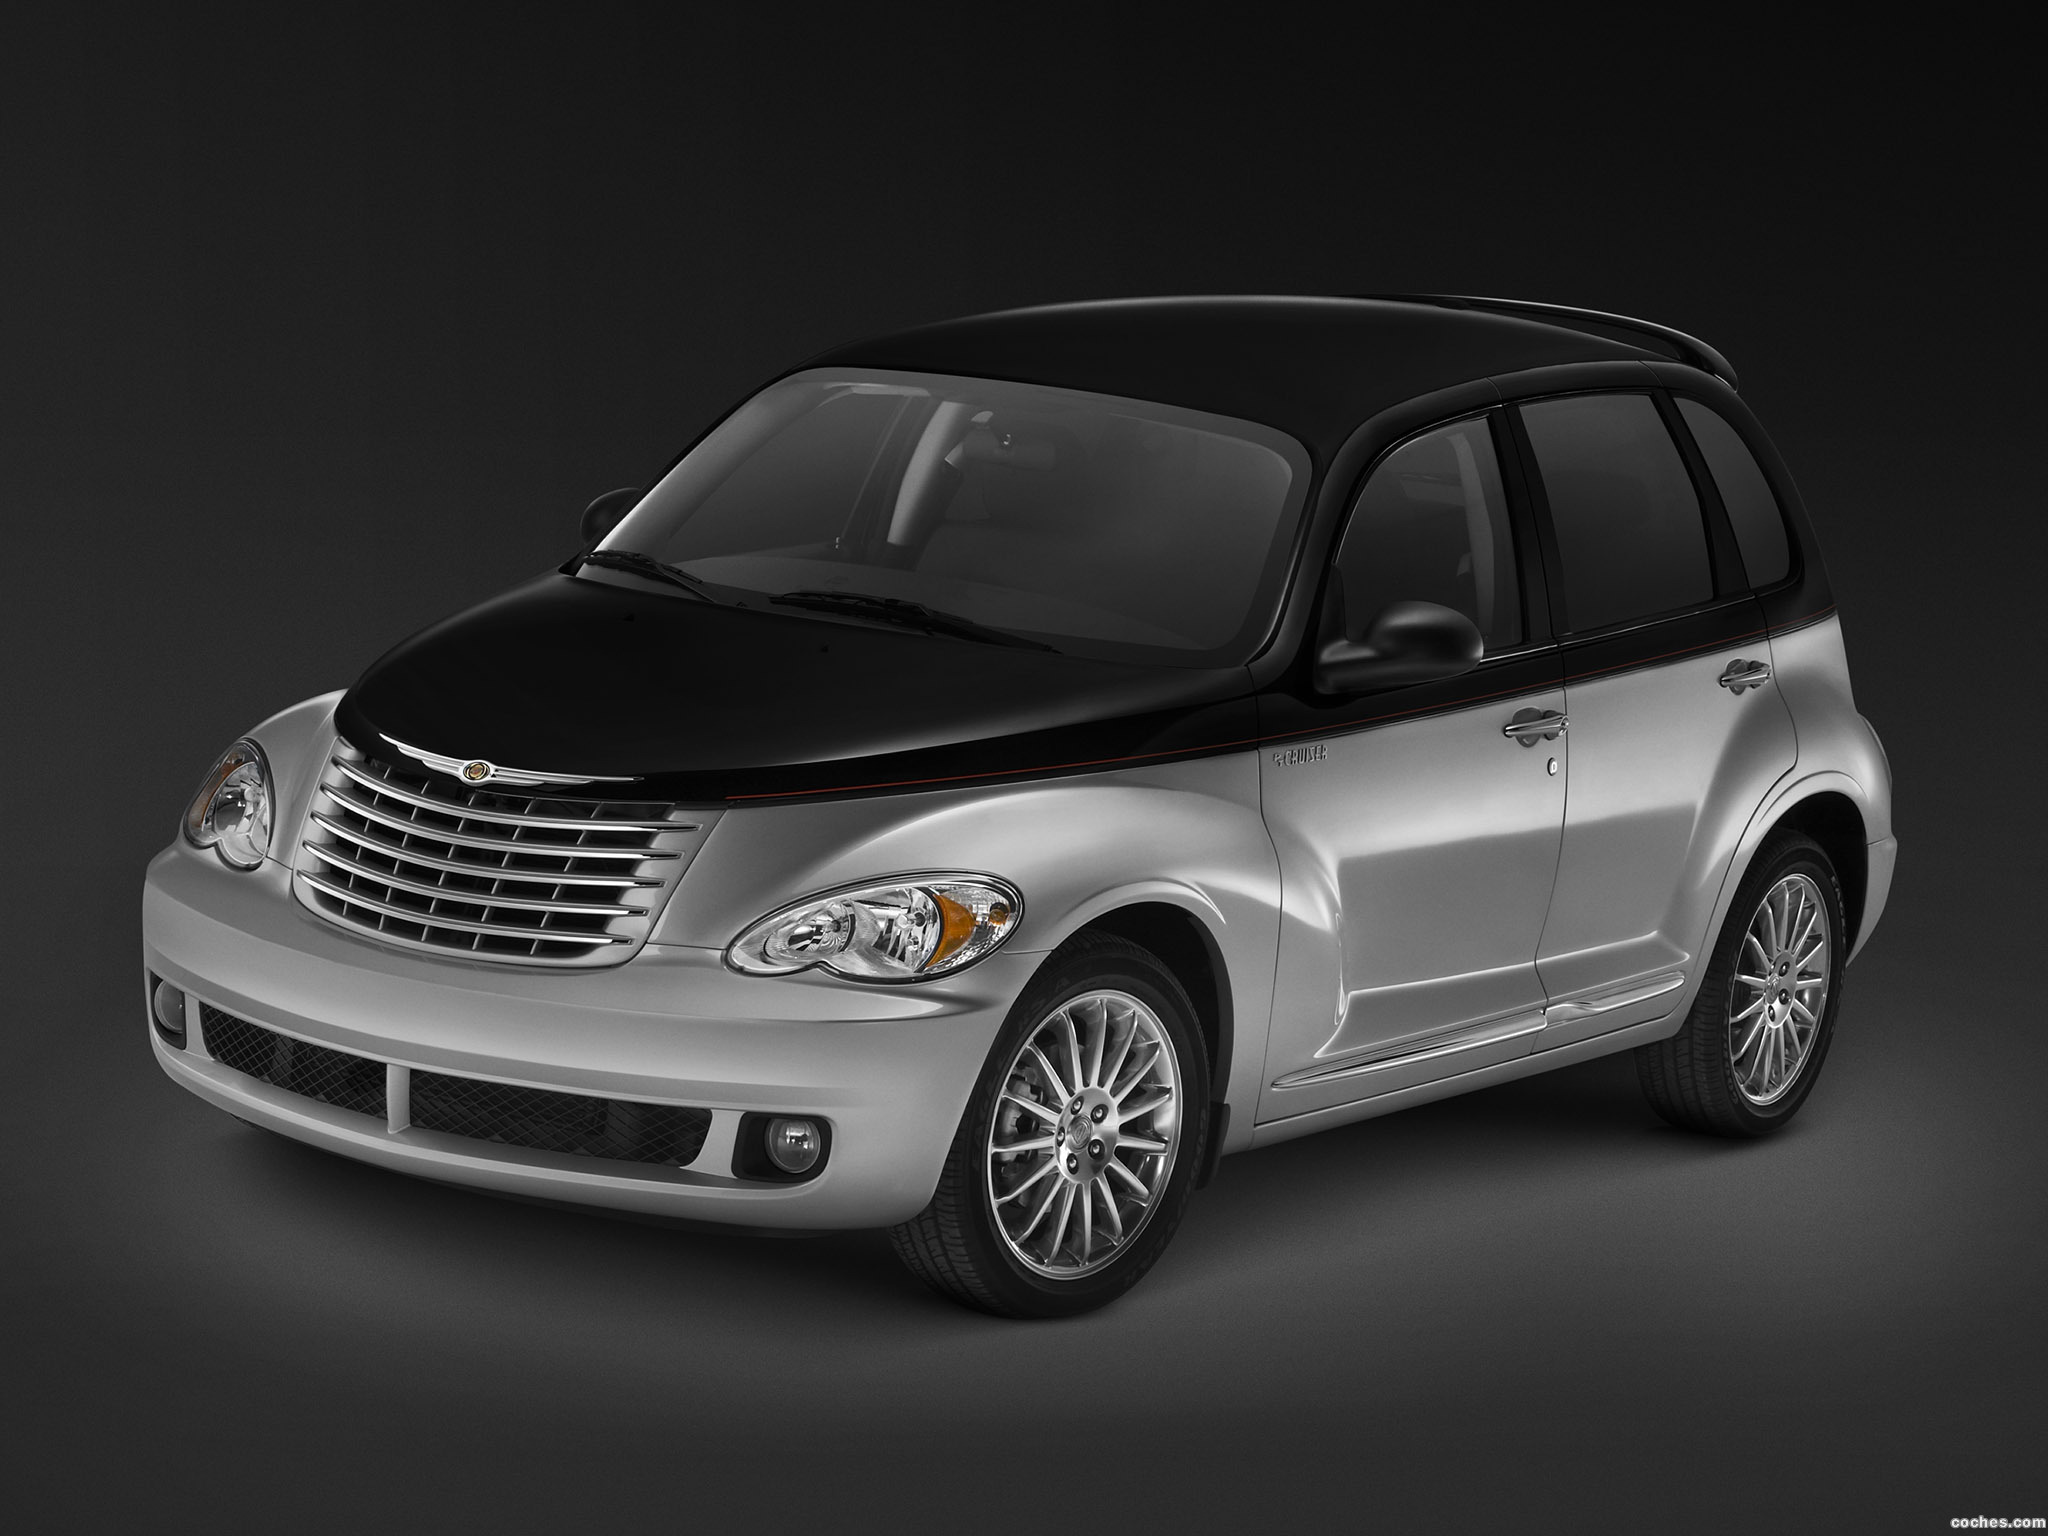 fotos de chrysler pt cruiser couture edition 2010. Black Bedroom Furniture Sets. Home Design Ideas